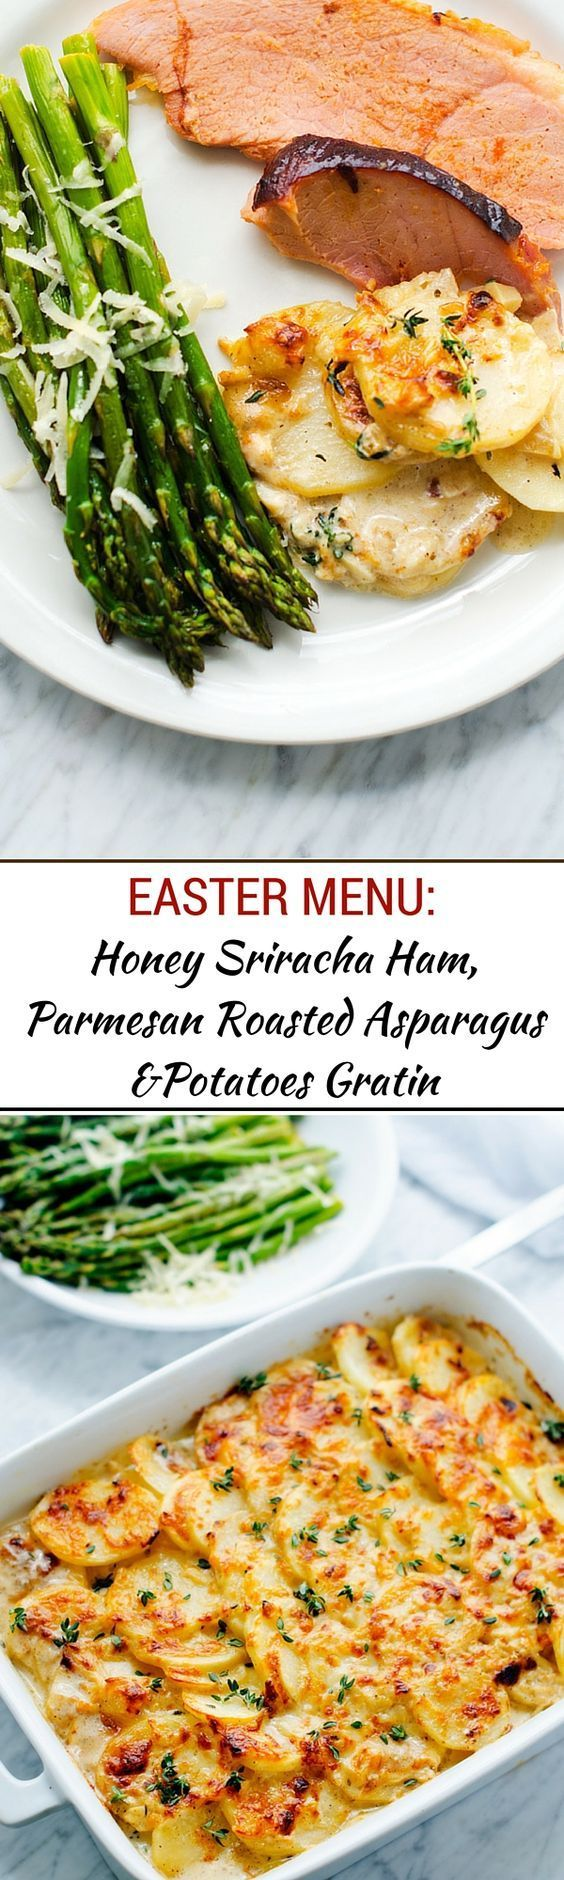 Our Easter Menu:  Honey Sriracha Ham, Goat Cheese Potatoes Gratin & Roasted Asparagus - - WendyPolisi.com - #sponsored #SnakeRiverFarms